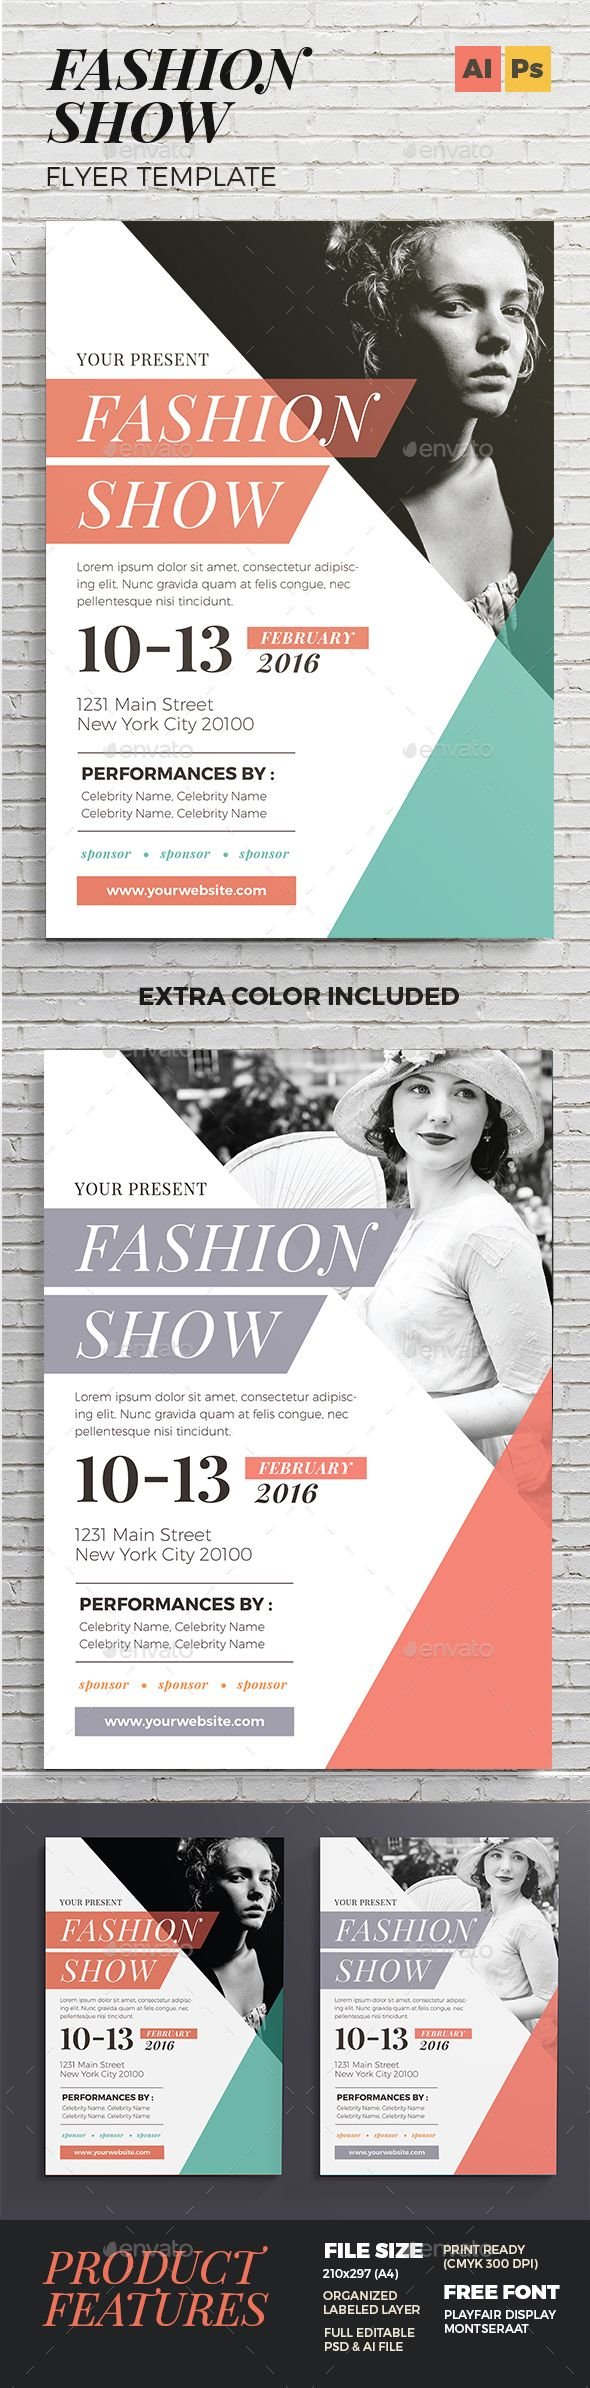 Poster design lesson plan - Fashion Show Flyer